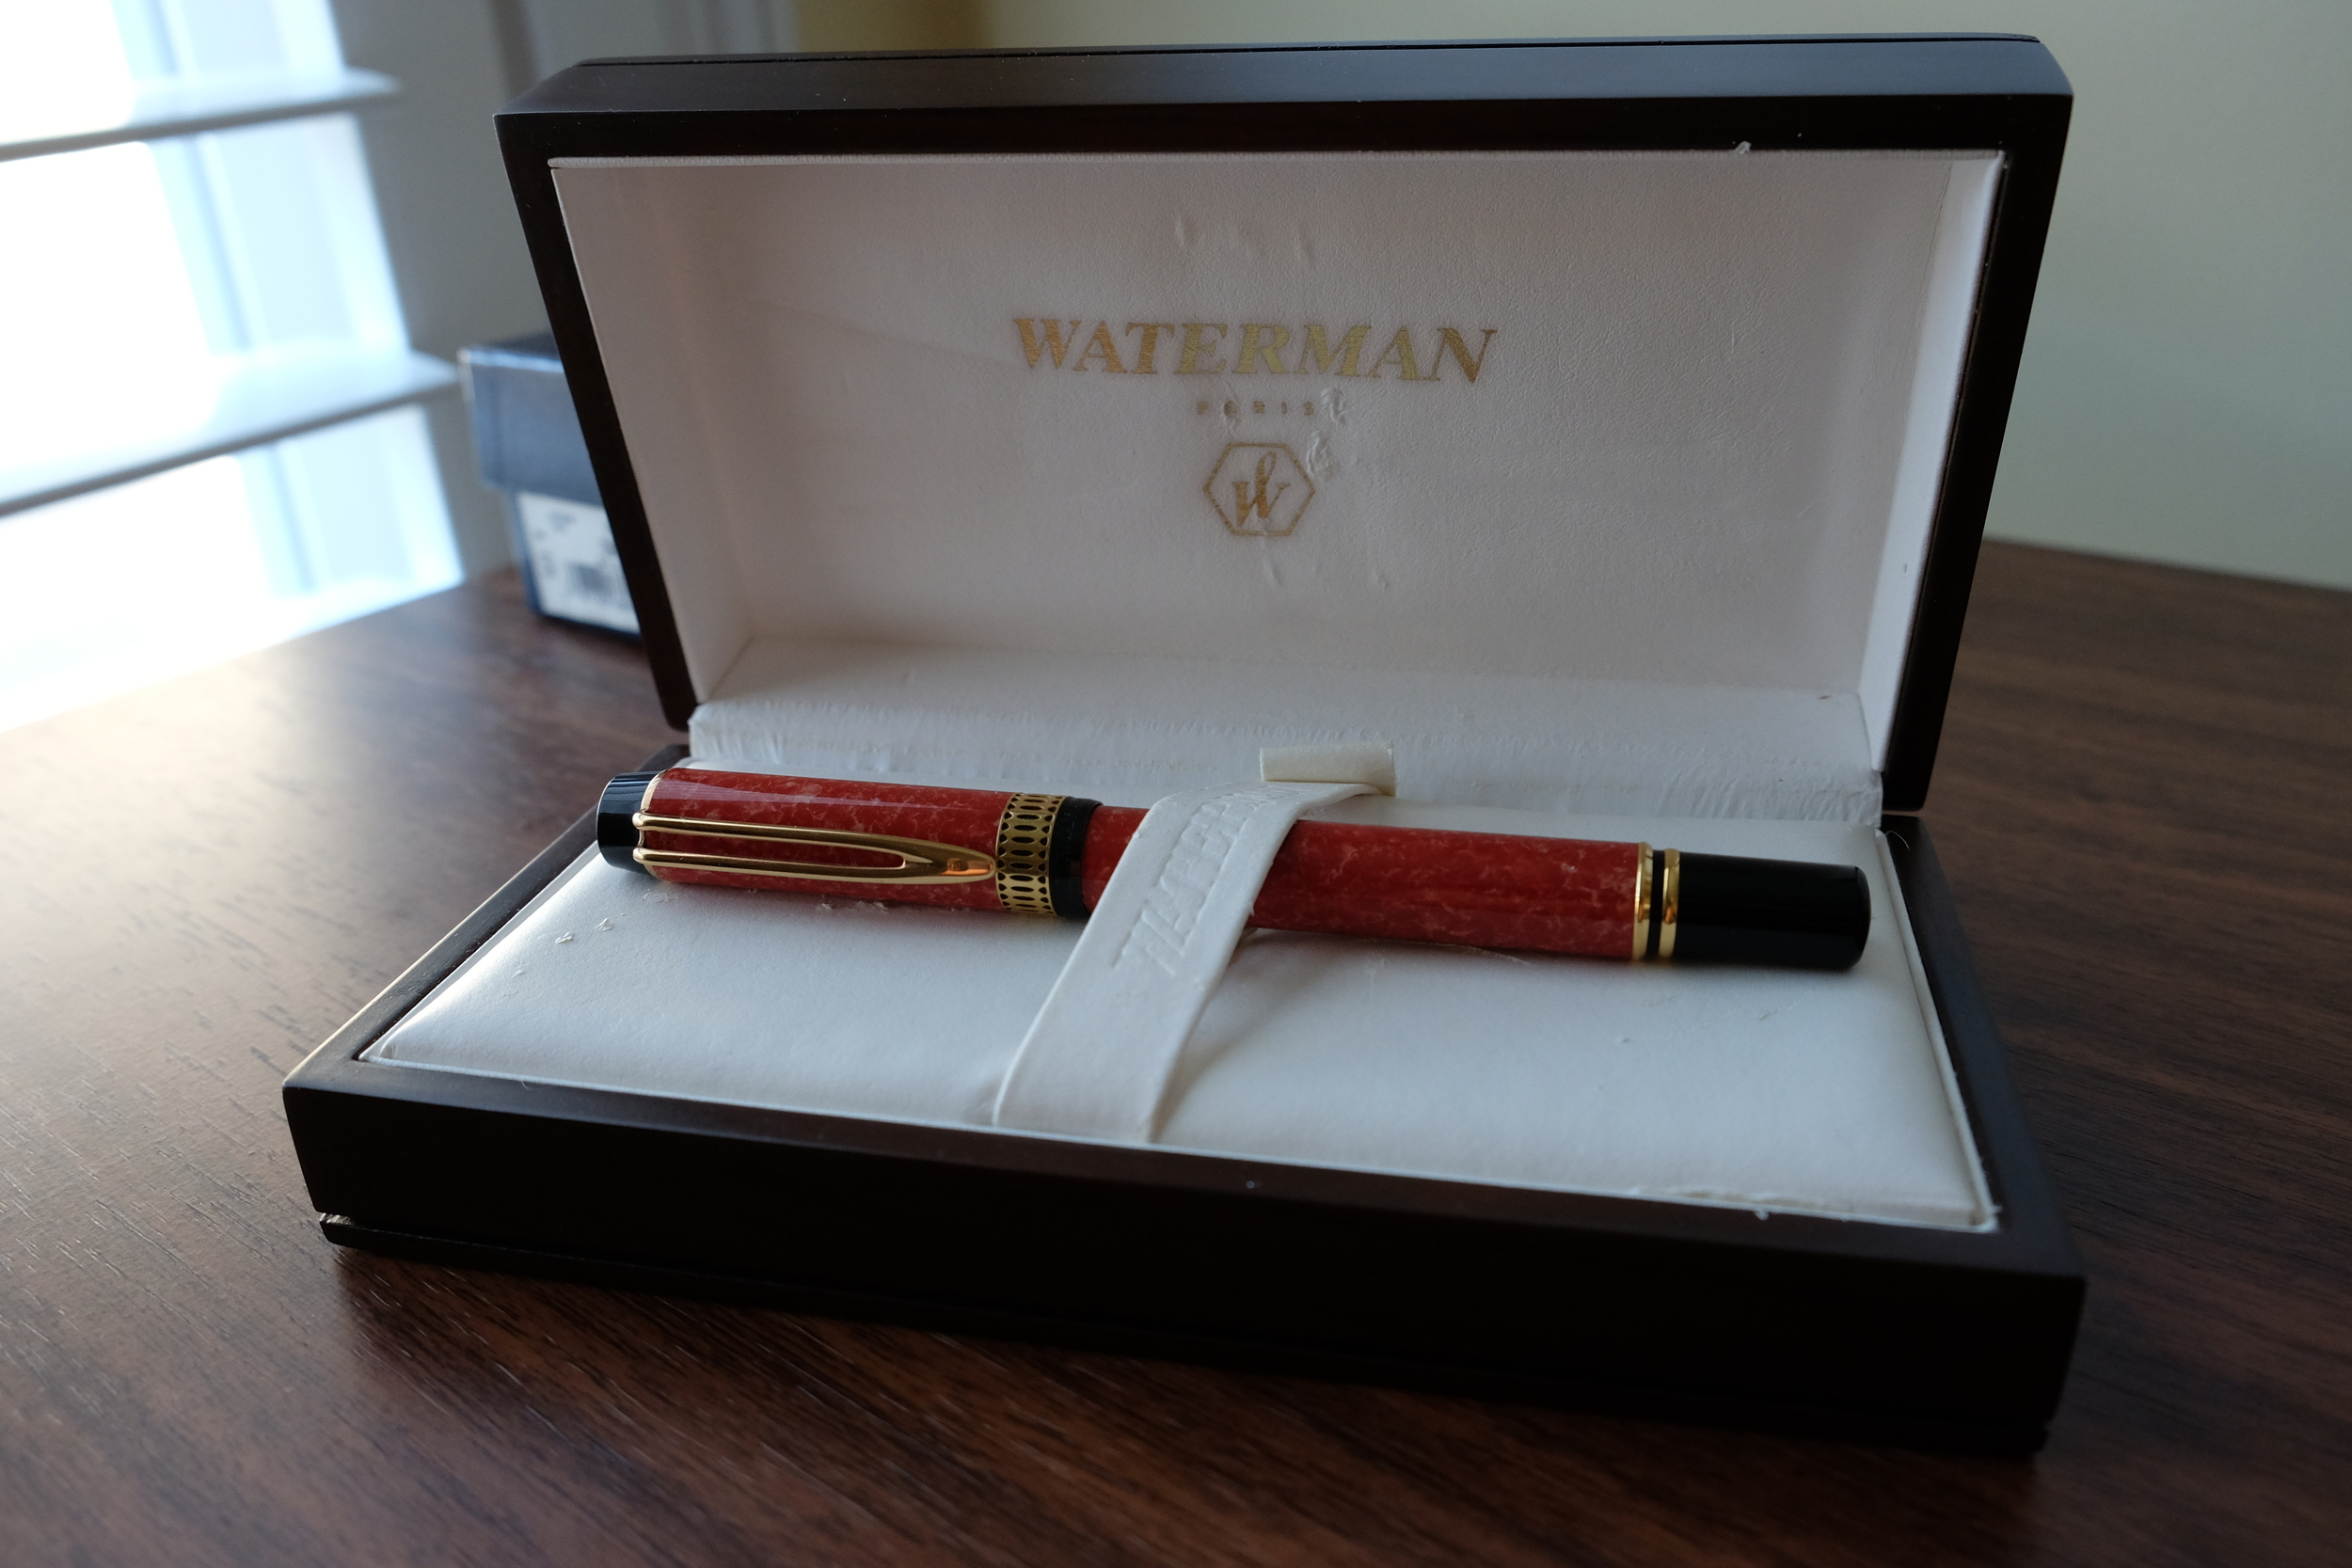 原始版本的Waterman Man 100 Patrician。